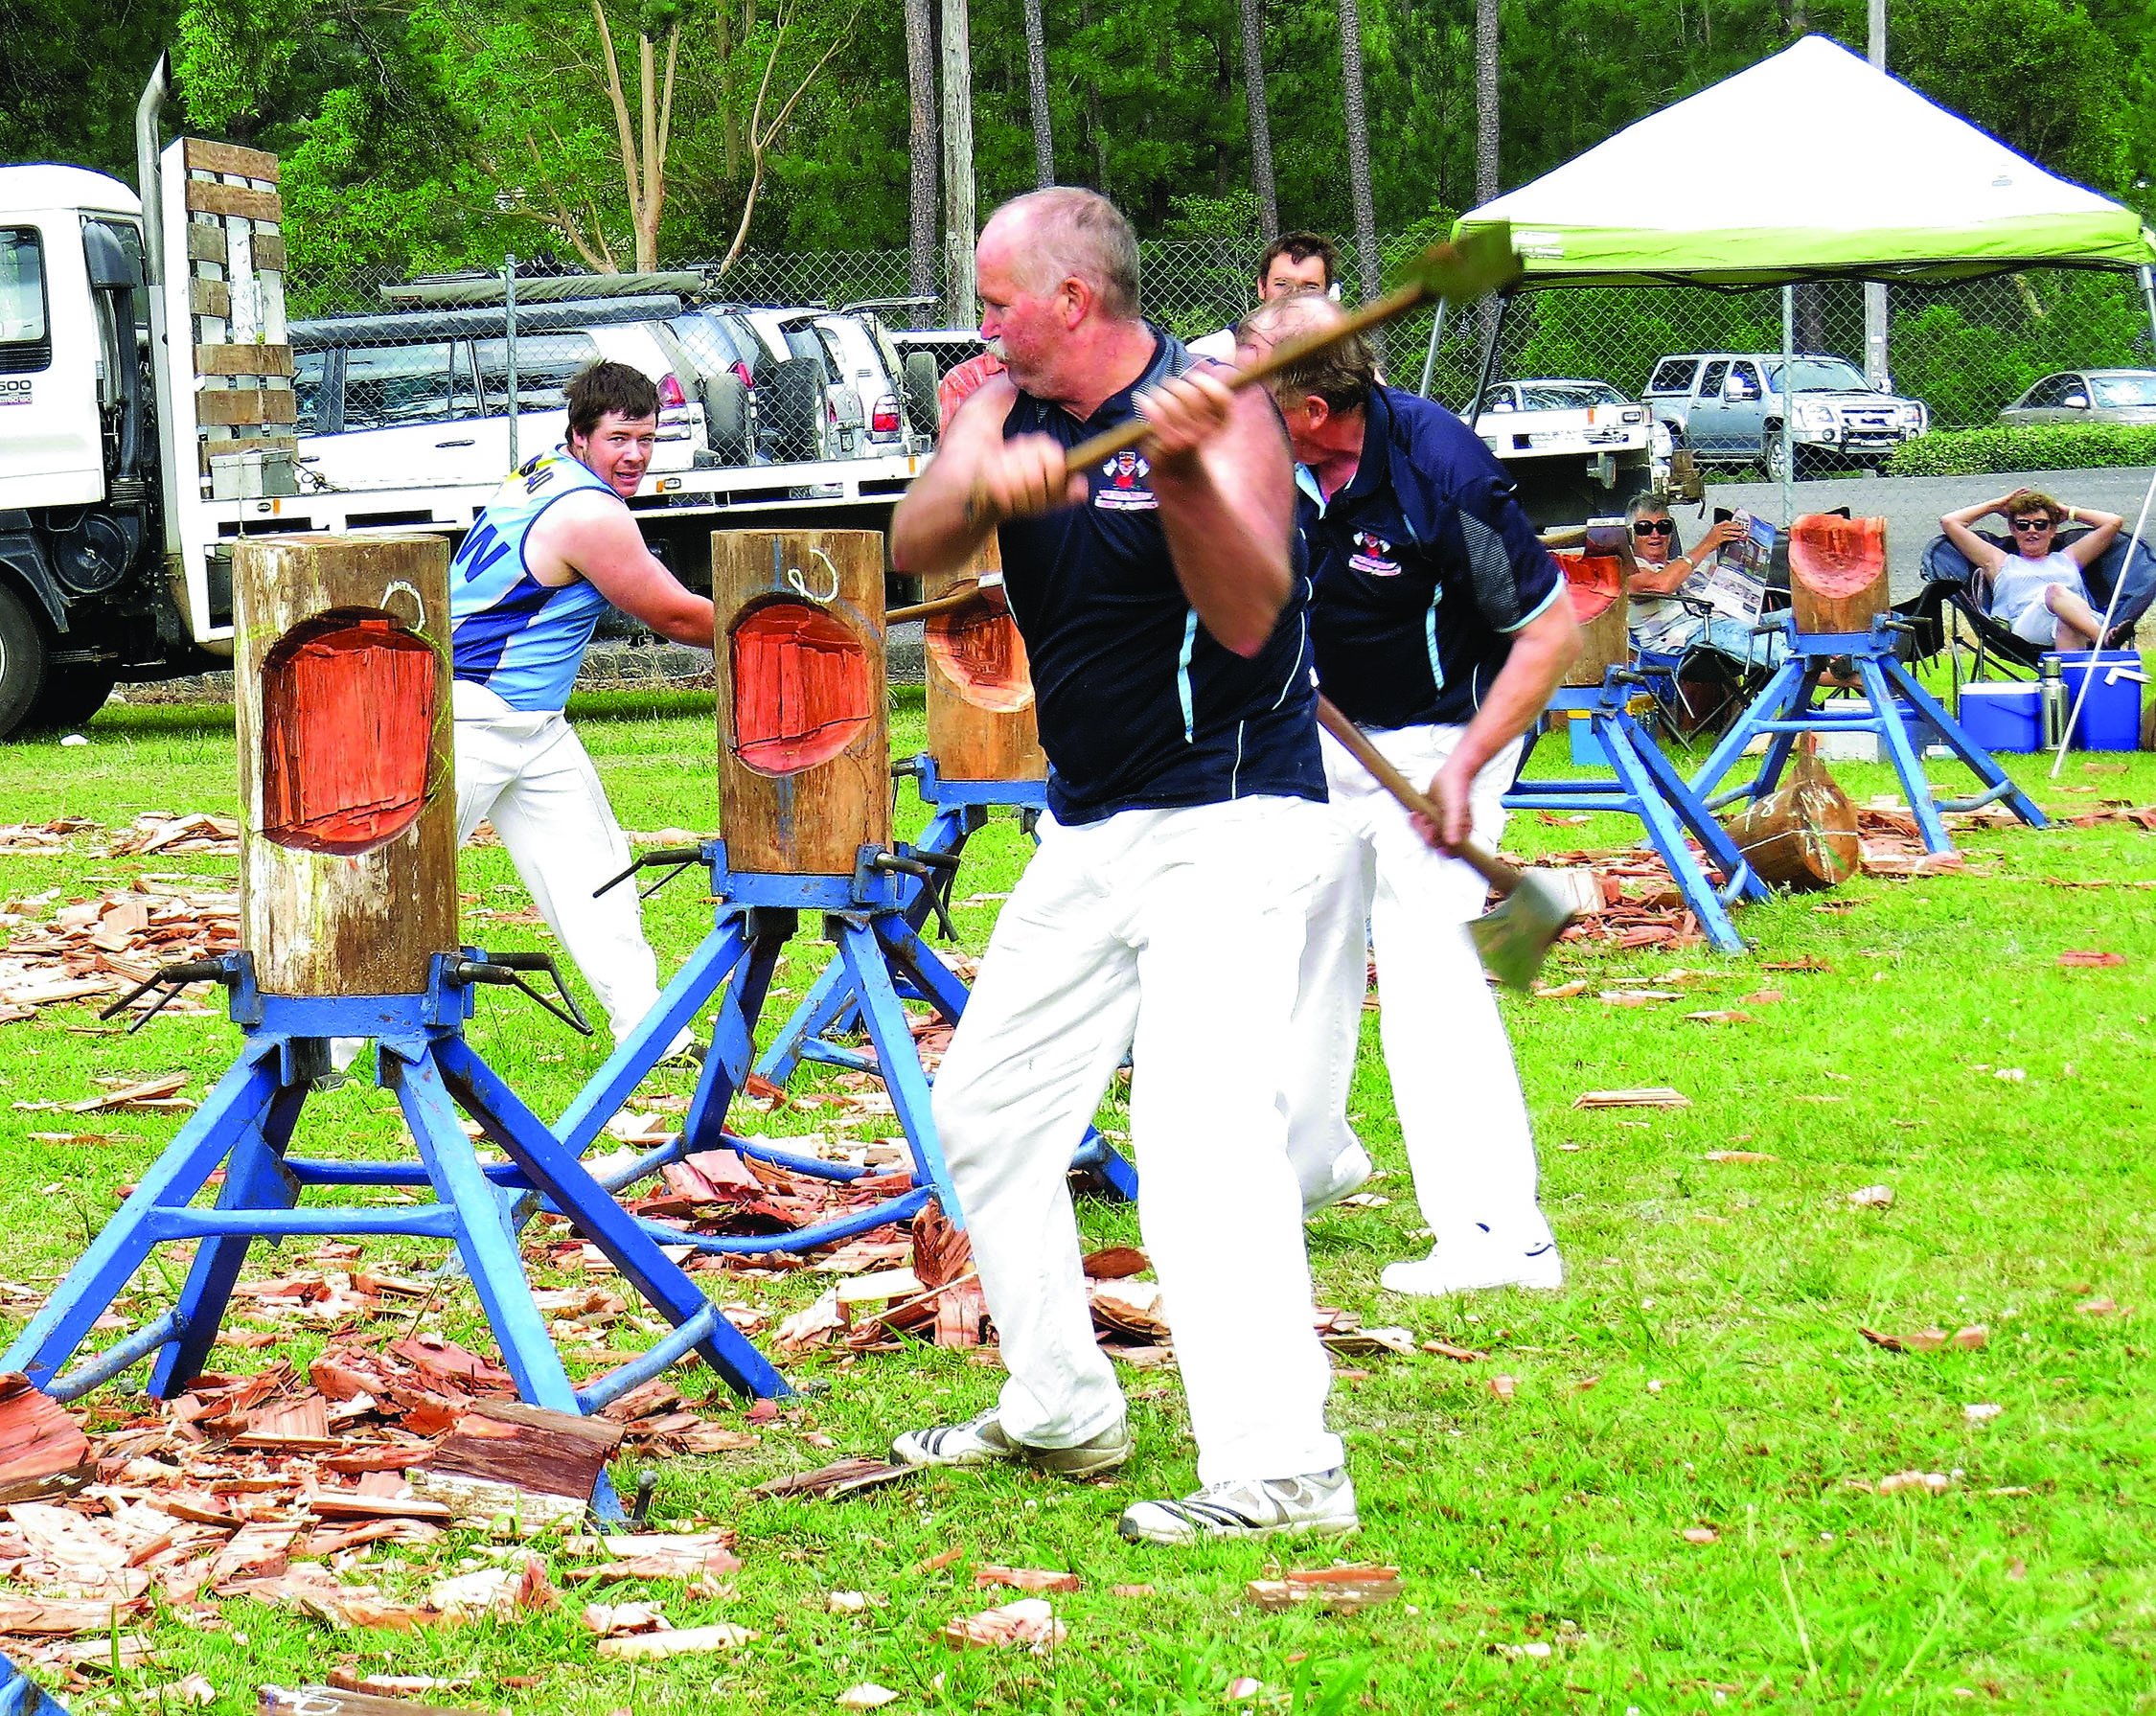 CHOP CHOP: Axemen show their skills in the woodchop competition